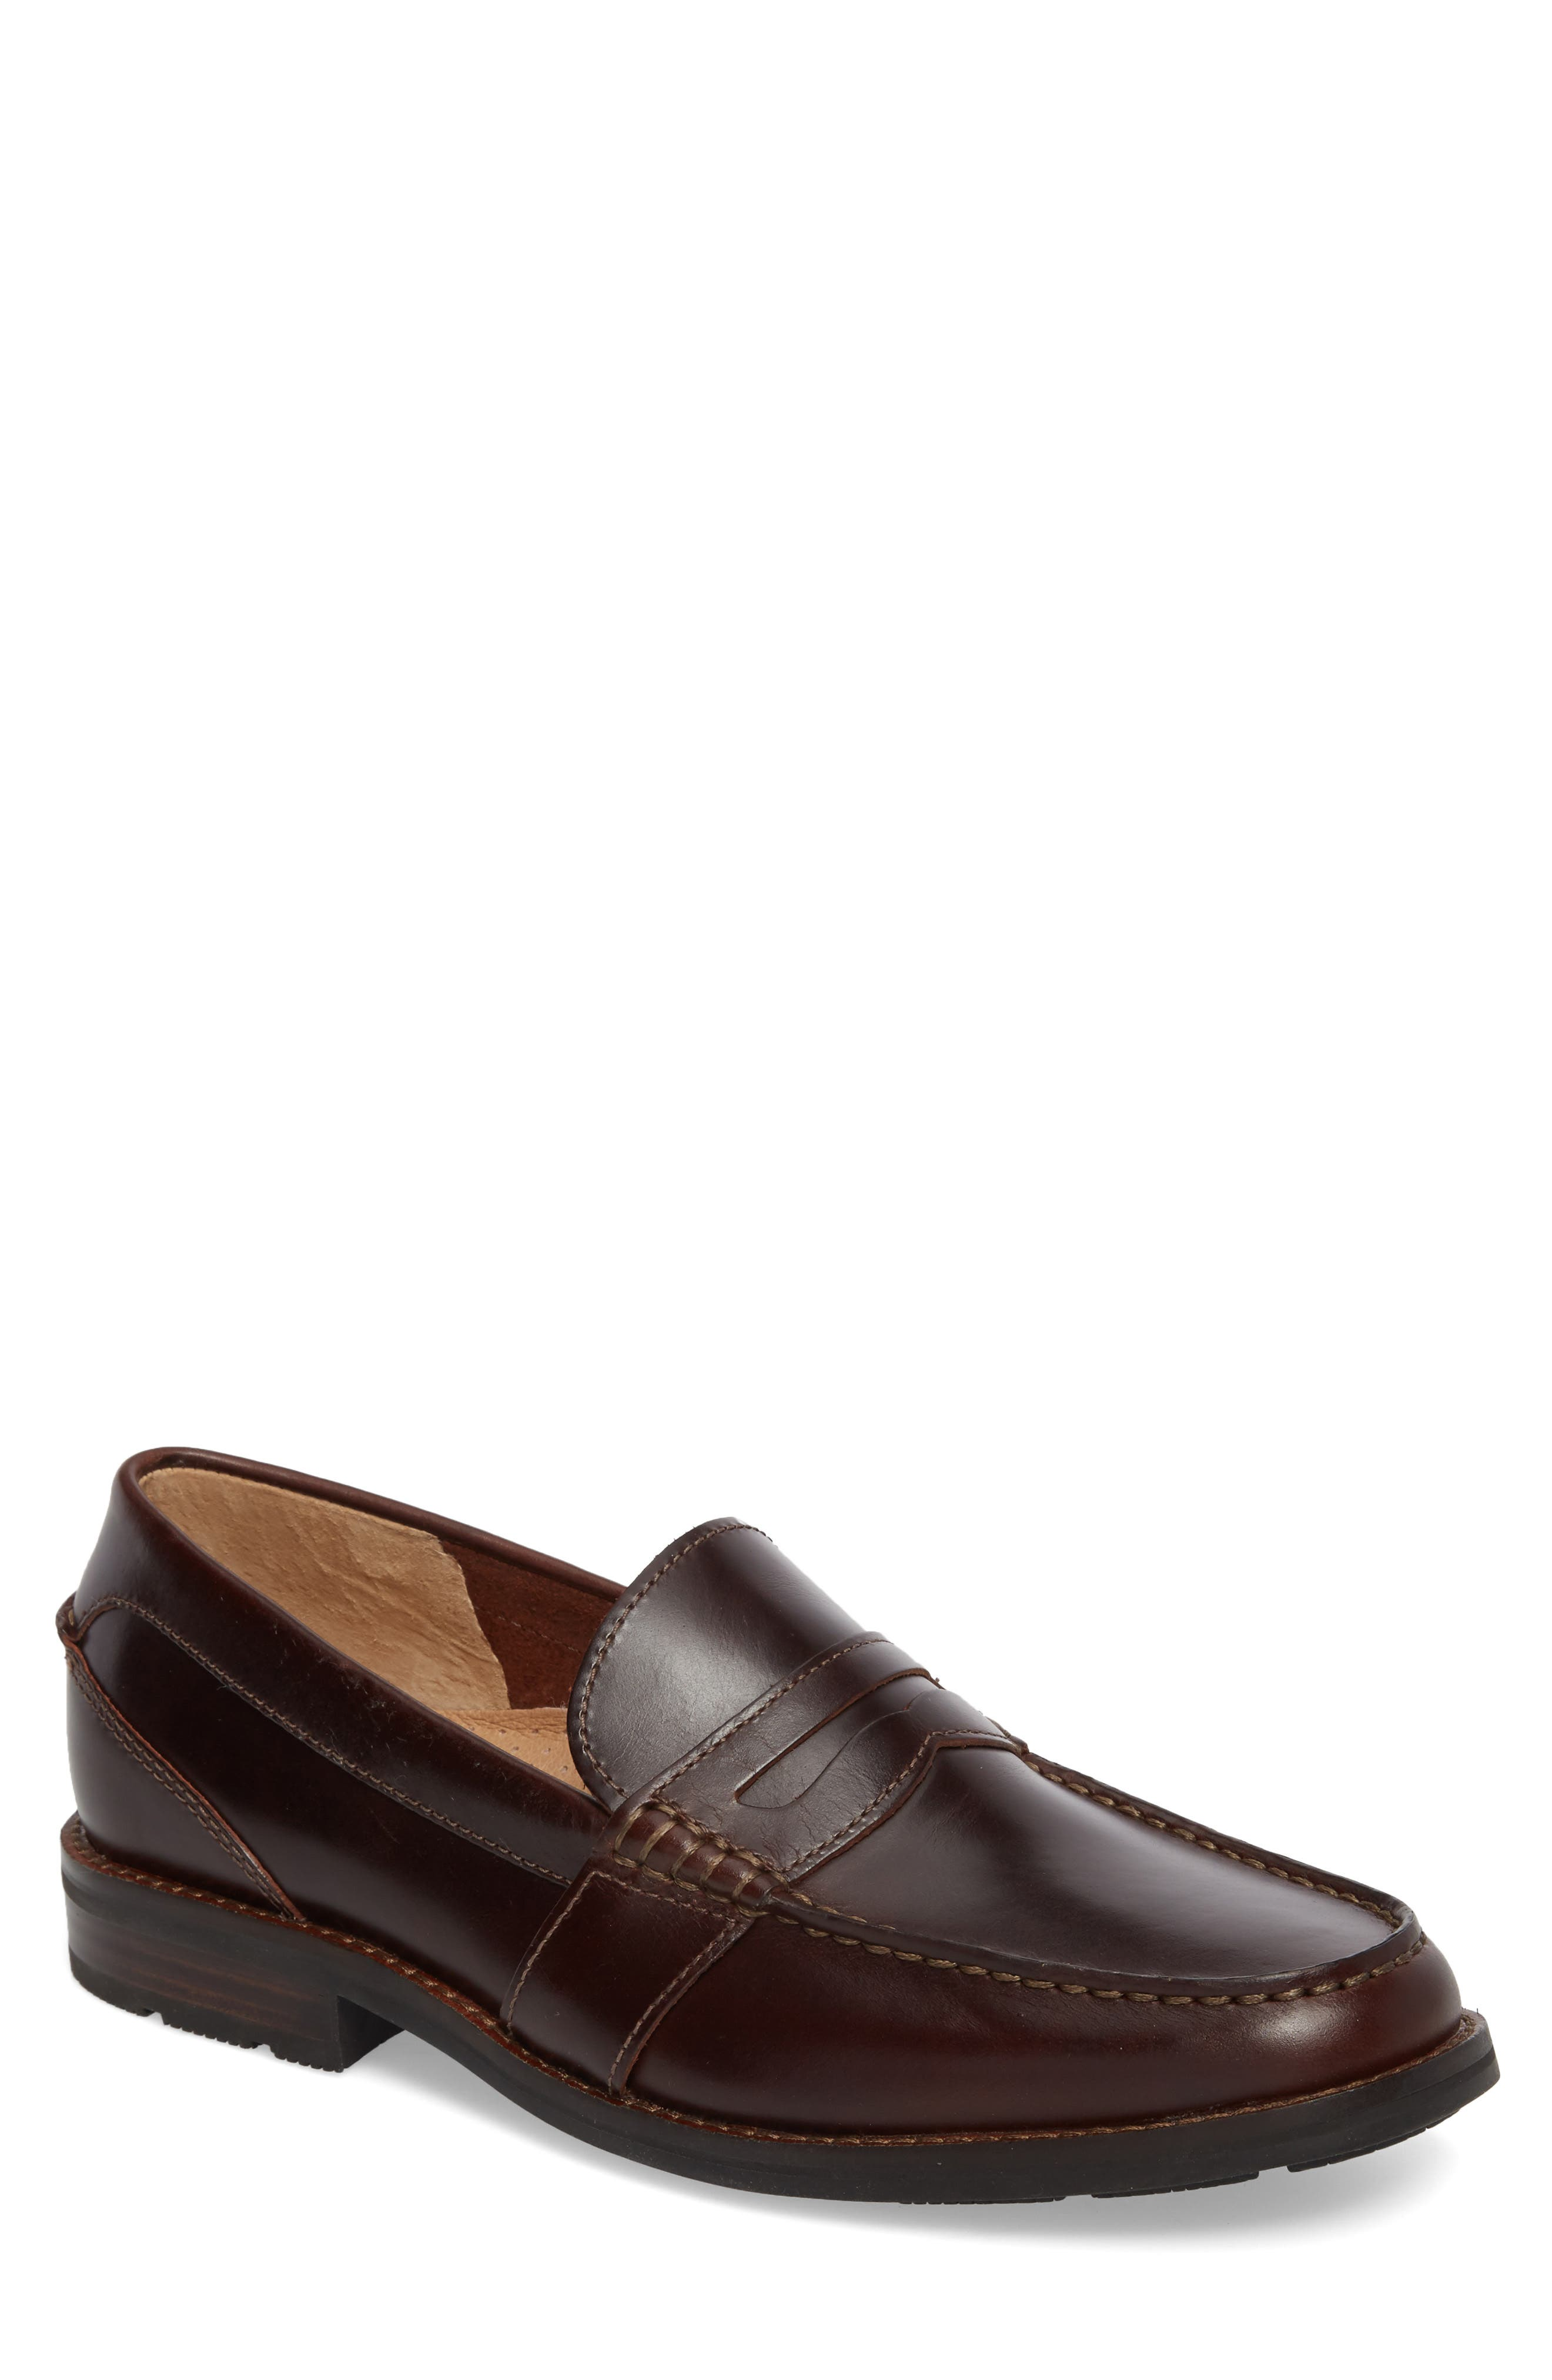 Essex Penny Loafer,                         Main,                         color, AMARETTO LEATHER